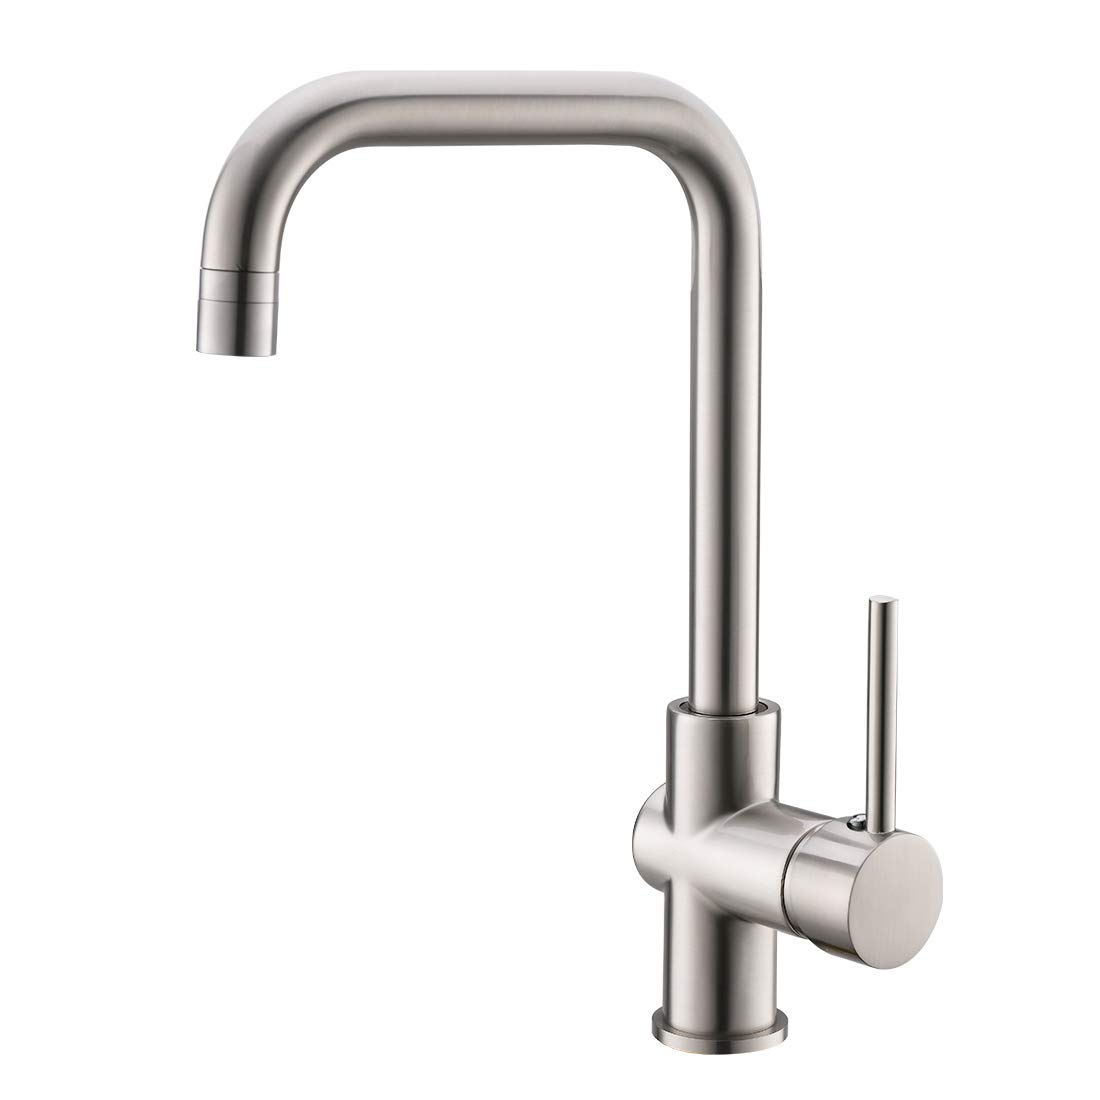 WANMAI Commercial Single Handle Kitchen Faucet, 360 Degree Rotation High Arc Brushed Bar Sink Faucets with Solid Brass Body Ceramic Valve, Brushed Nickel